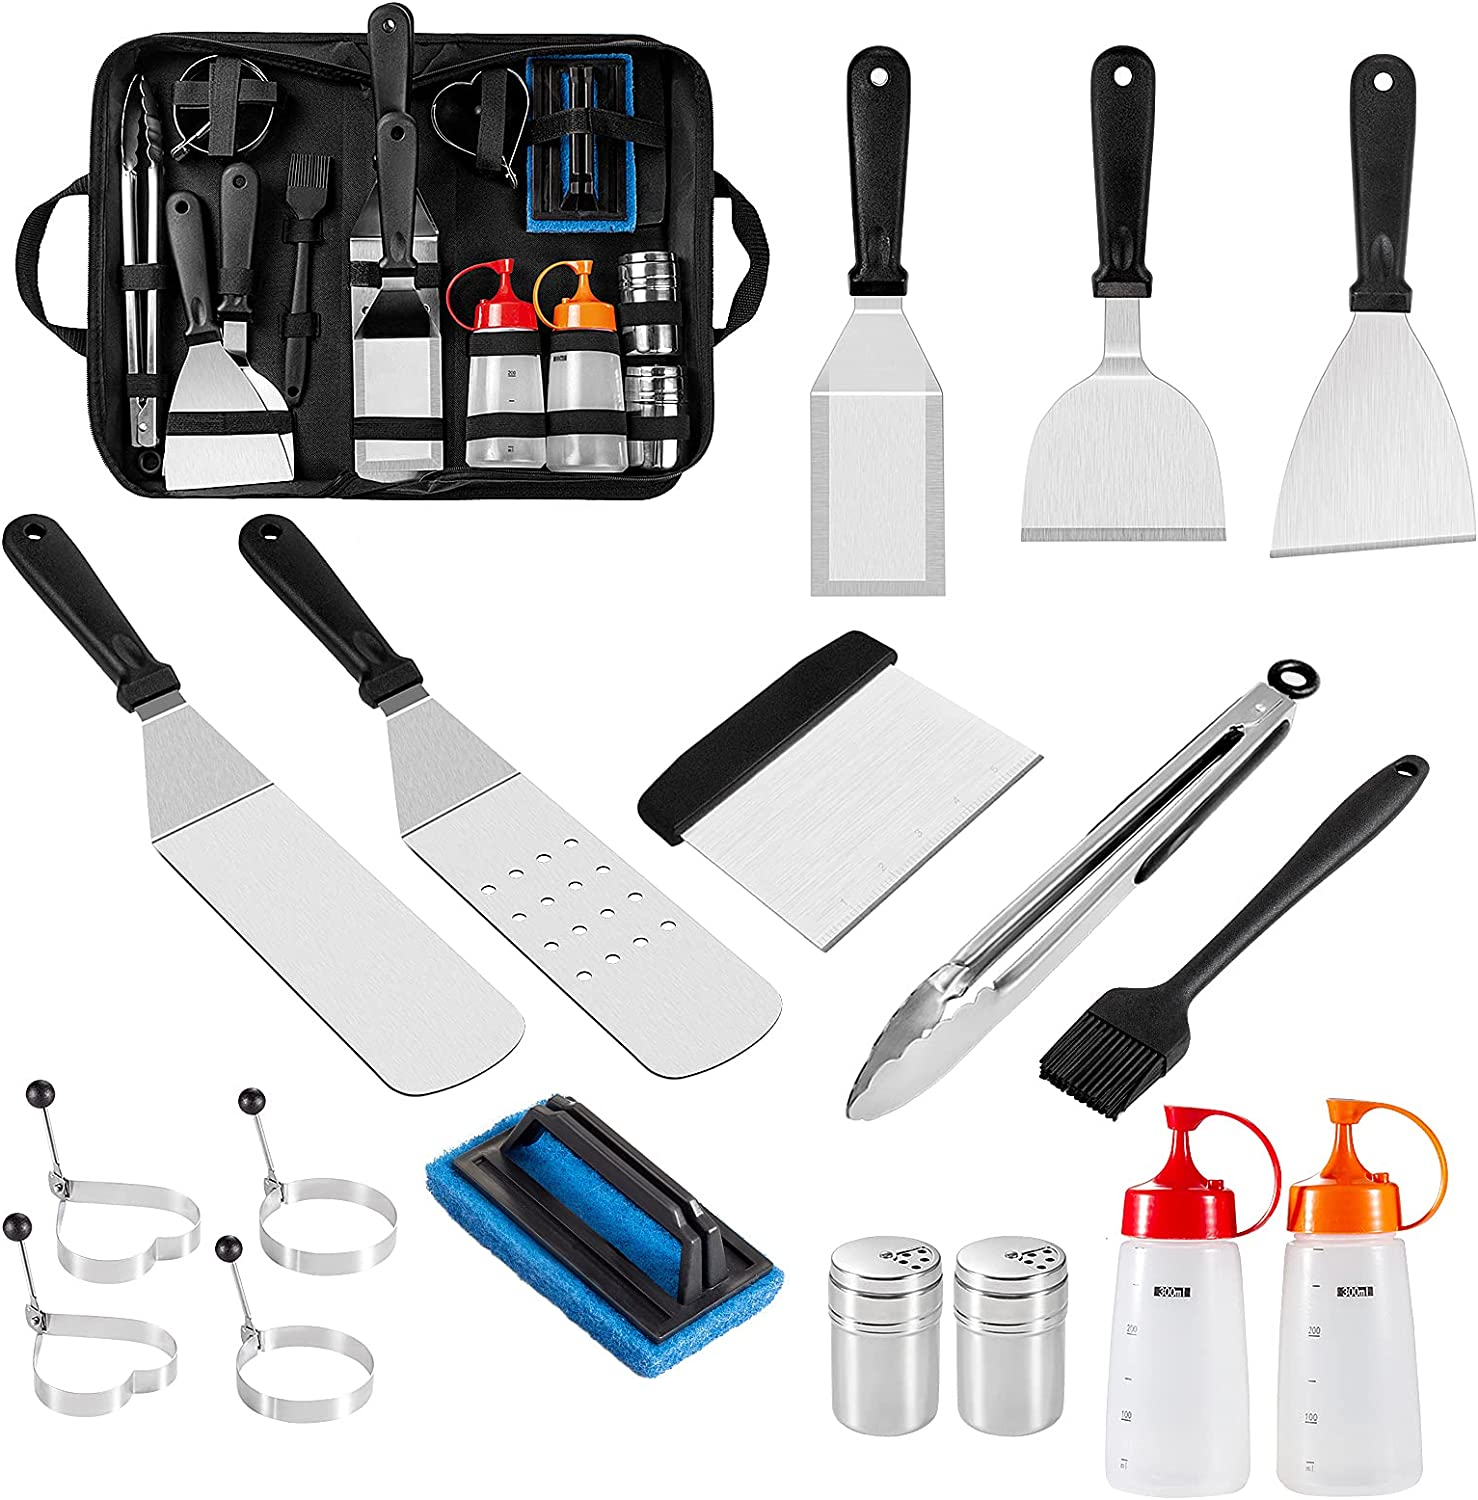 OneLeaf Griddle Accessories Kit for Blackstone and Camp Chef, 18Pcs Flat Top Grill Accessories Set with Griddle Cleaning Kit & Carry Bag, Griddle Tools with Spatula/Scraper/Egg Ring for BBQ, Camping